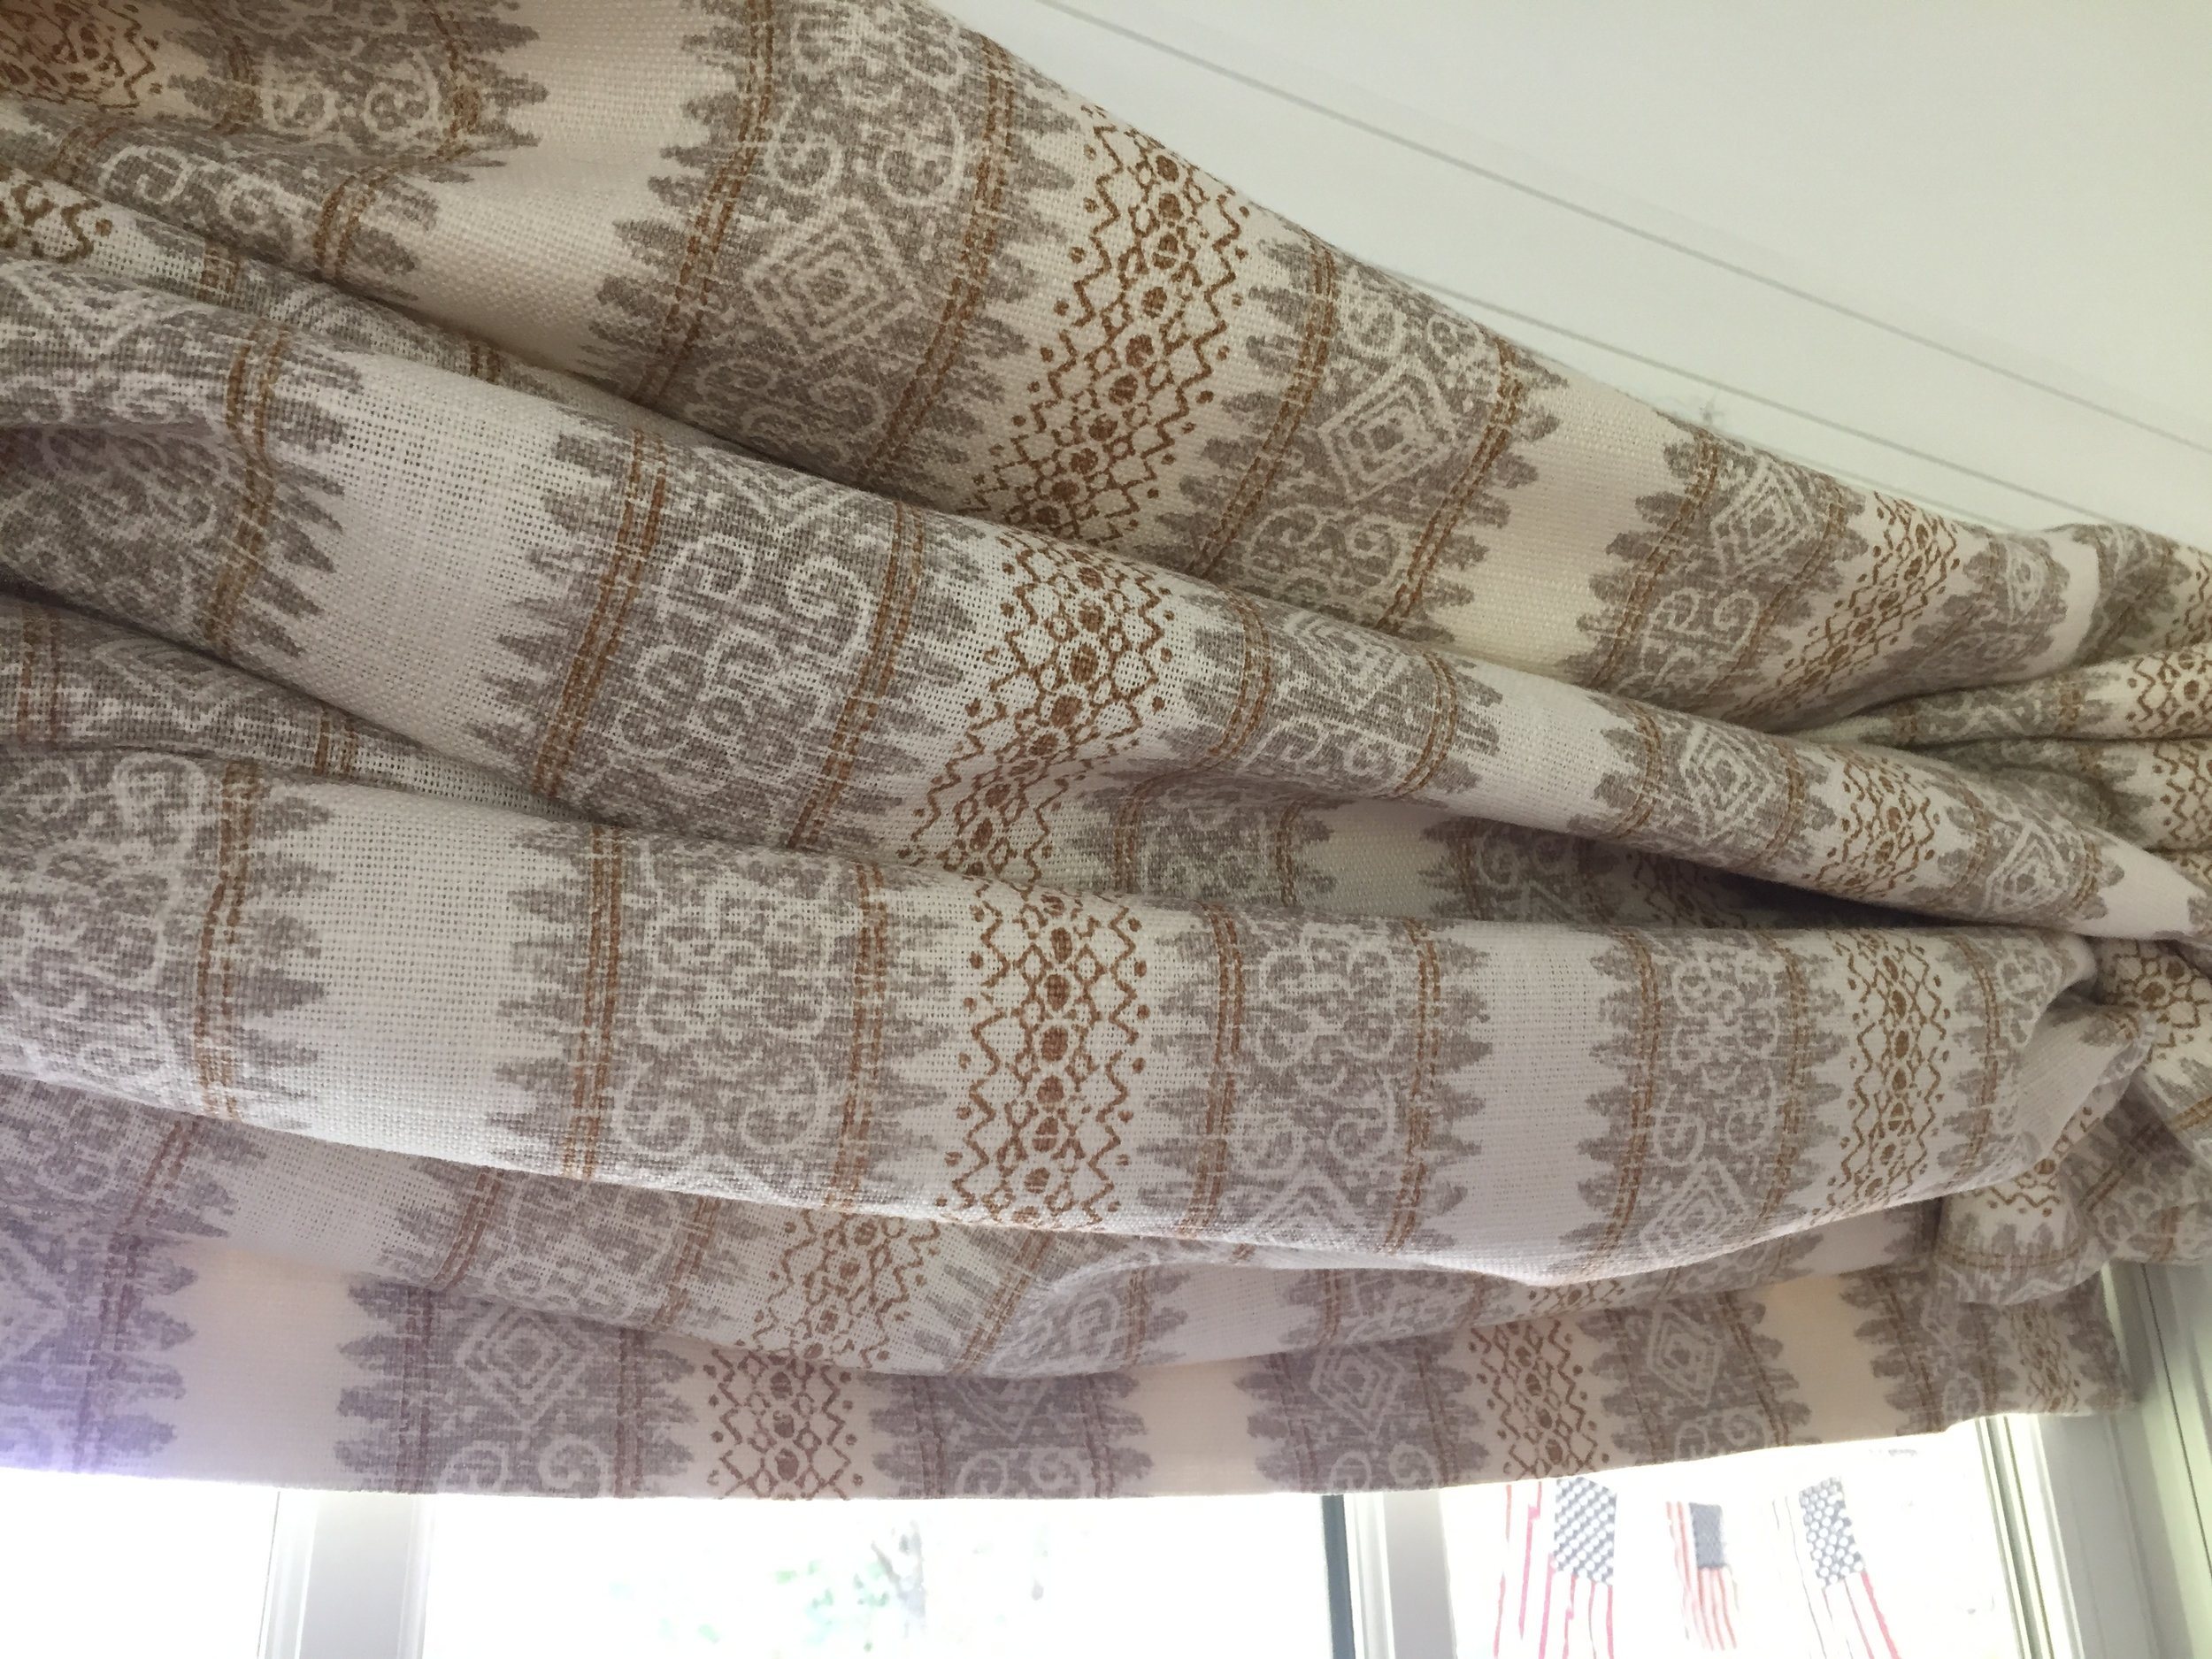 I made the relaxed Roman shades for the for the bedroom windows. The windows in the entire house are quite tall and bring the beautiful scenery outside into the house. So I wanted to expose as much of them as possible, while still having privacy at night.